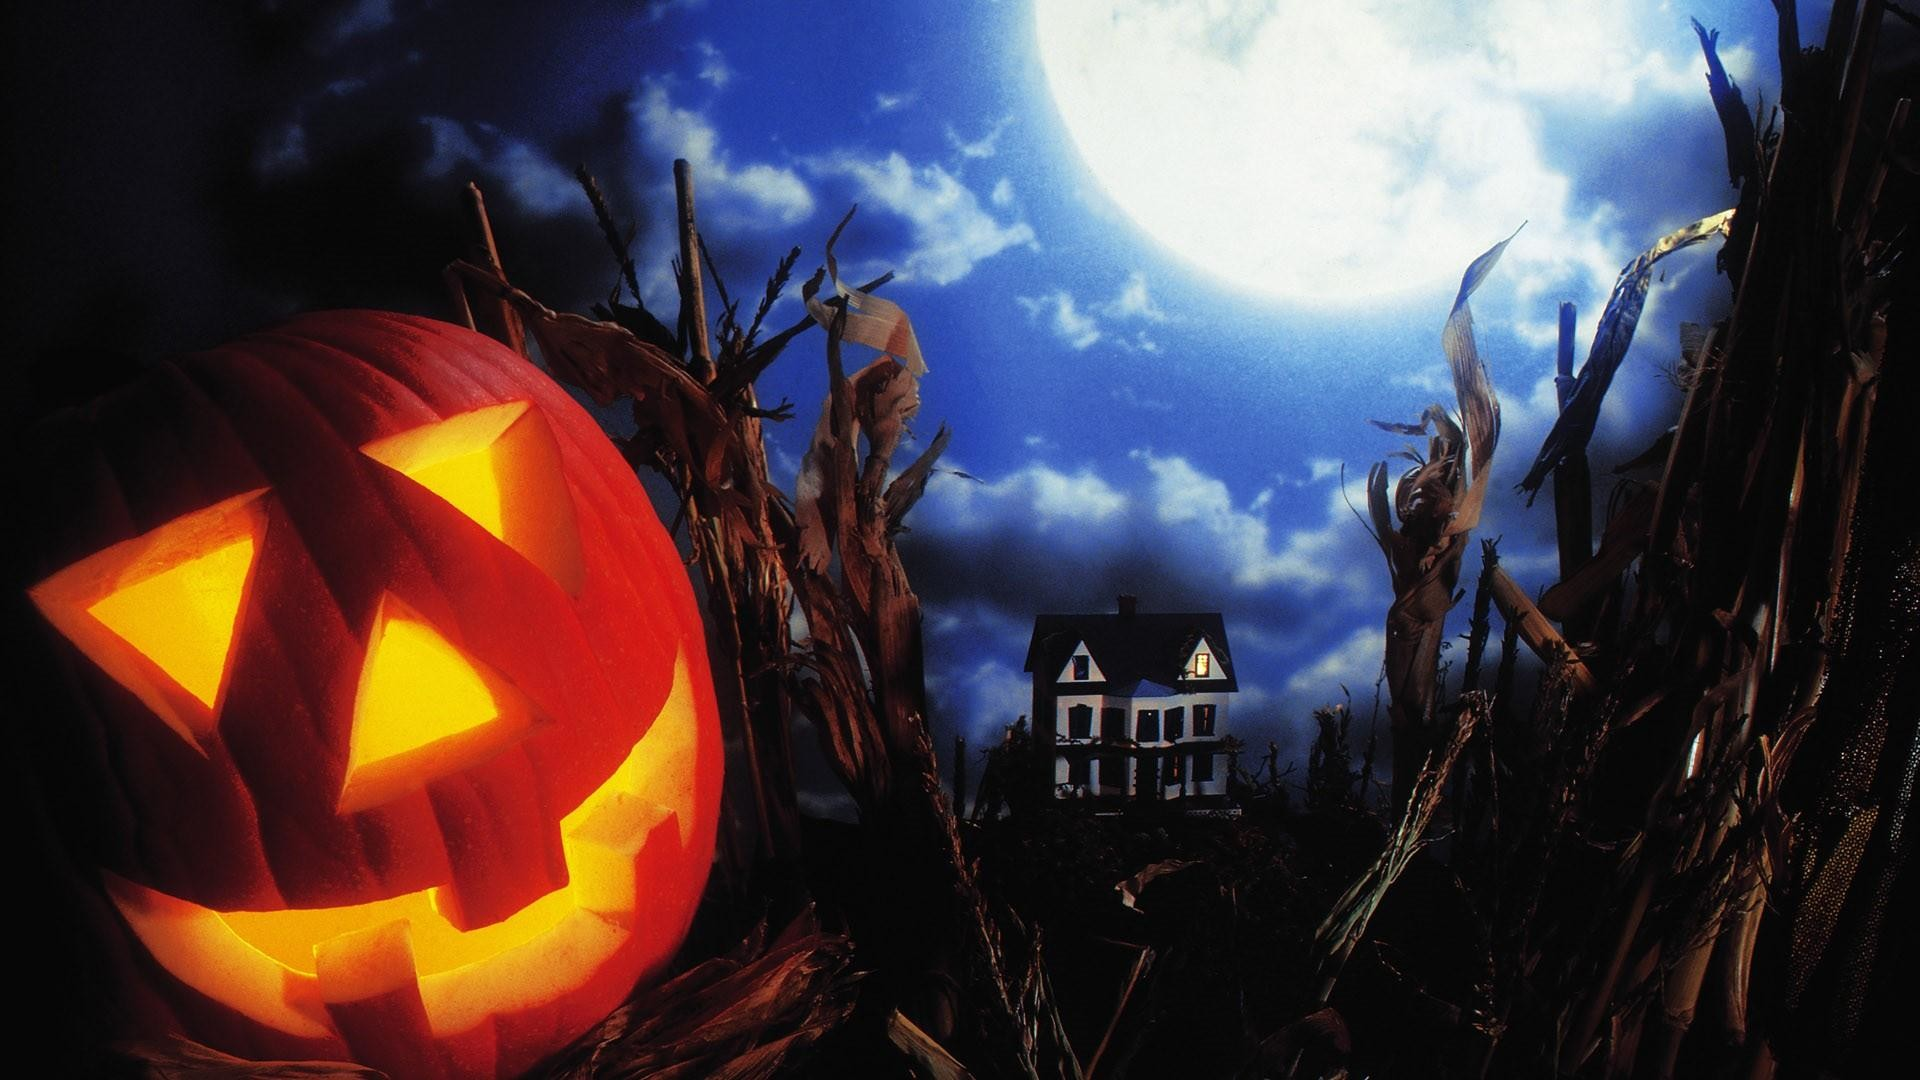 Res: 1920x1080, Happy Halloween Wallpaper | Wallpaper Studio 10 | Tens of thousands HD and  UltraHD wallpapers for Android, Windows and Xbox